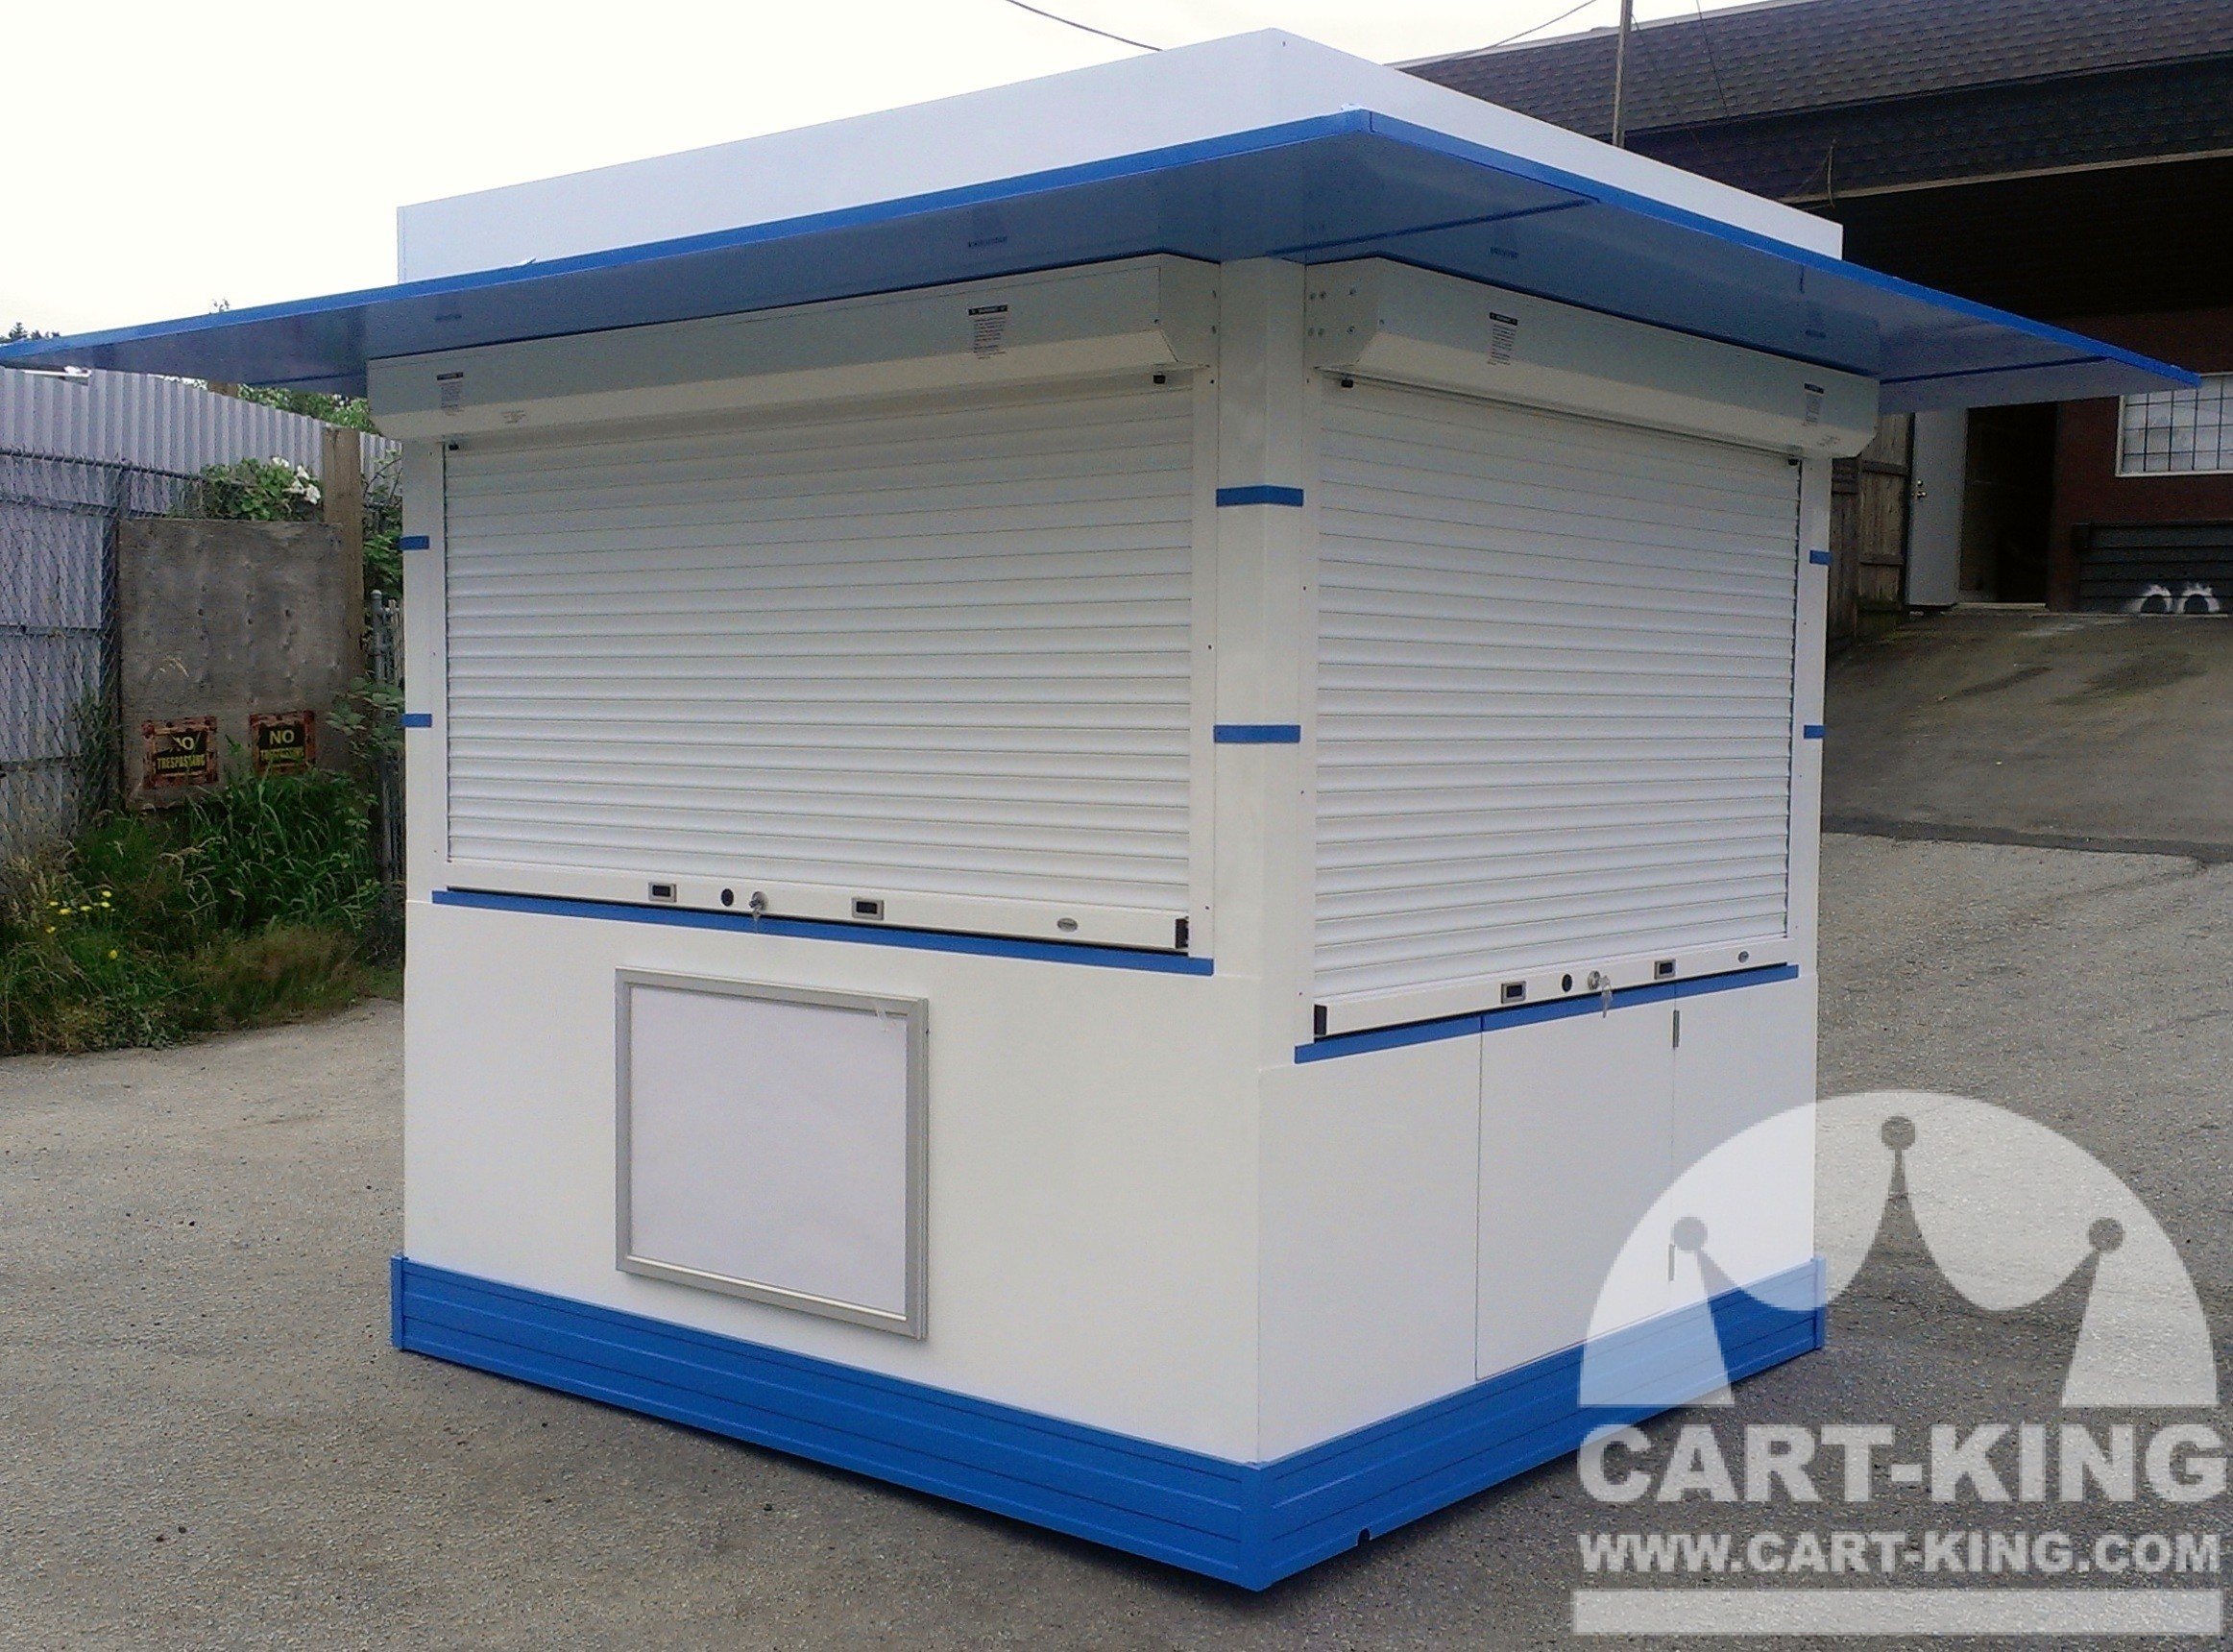 Outdoor kiosk with closed shutters cart king international for Mobili kios